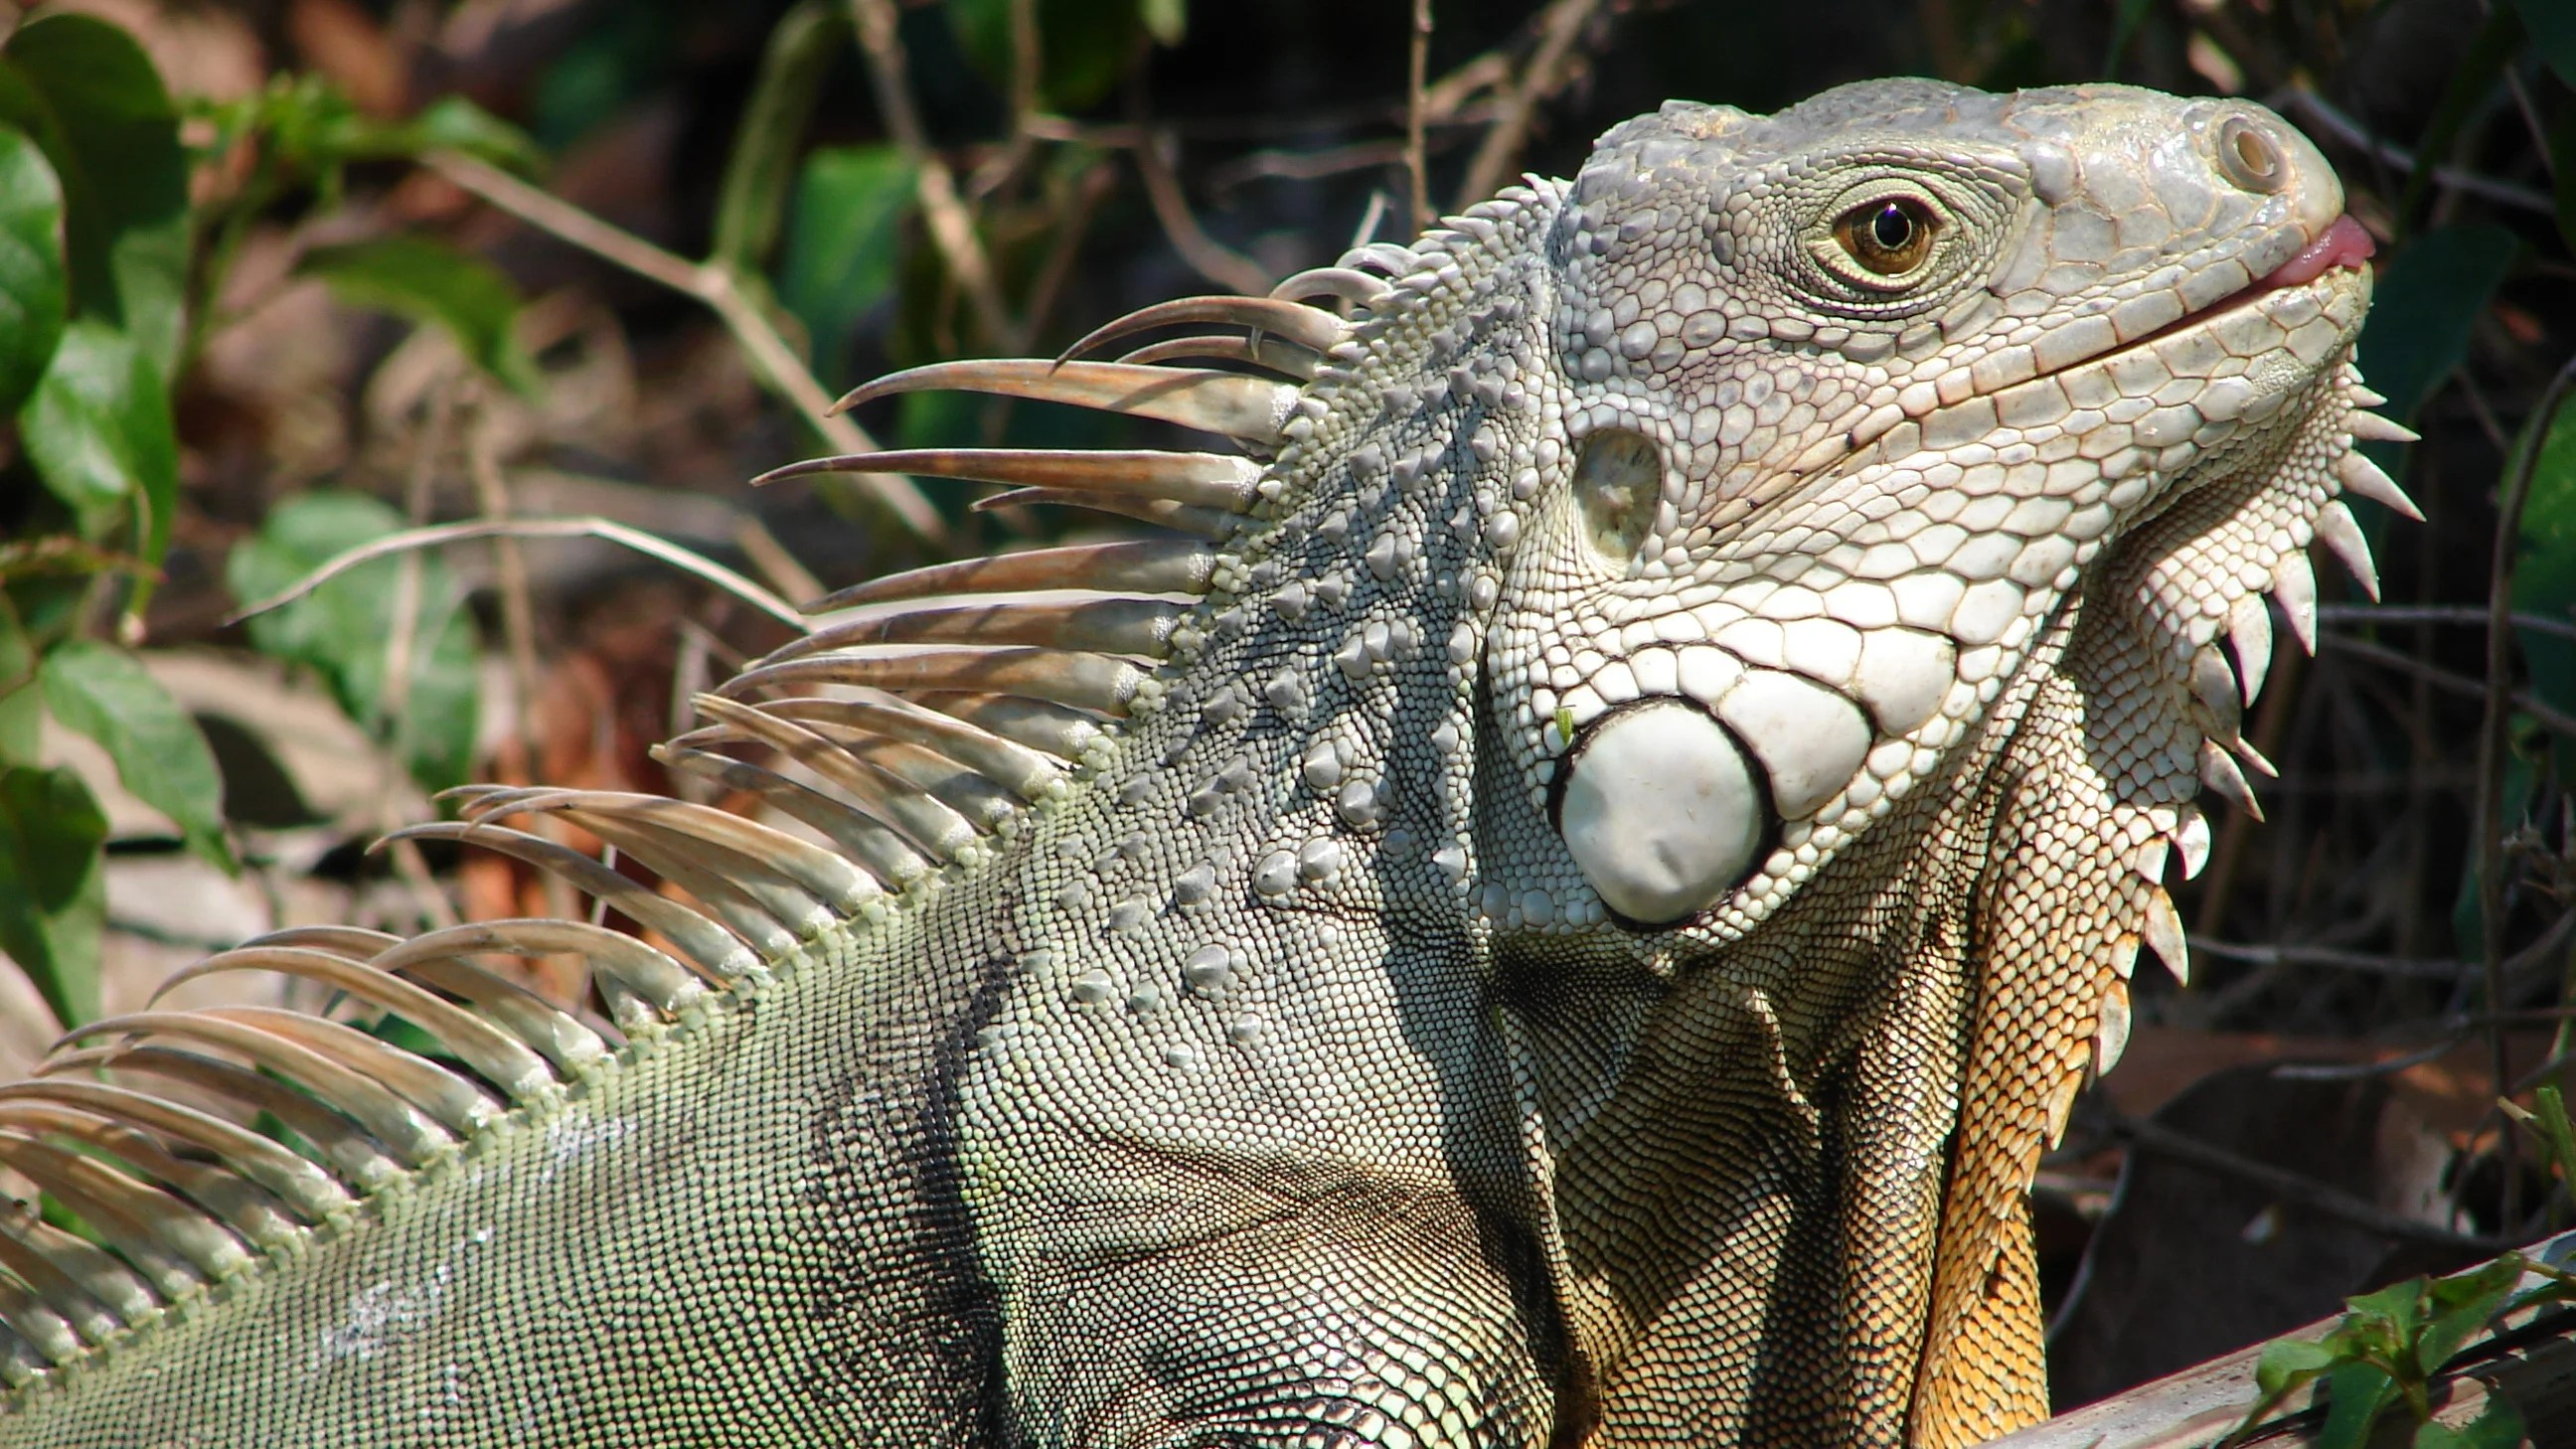 Florida Wildlife Officials Are Killing Invasive Iguanas By